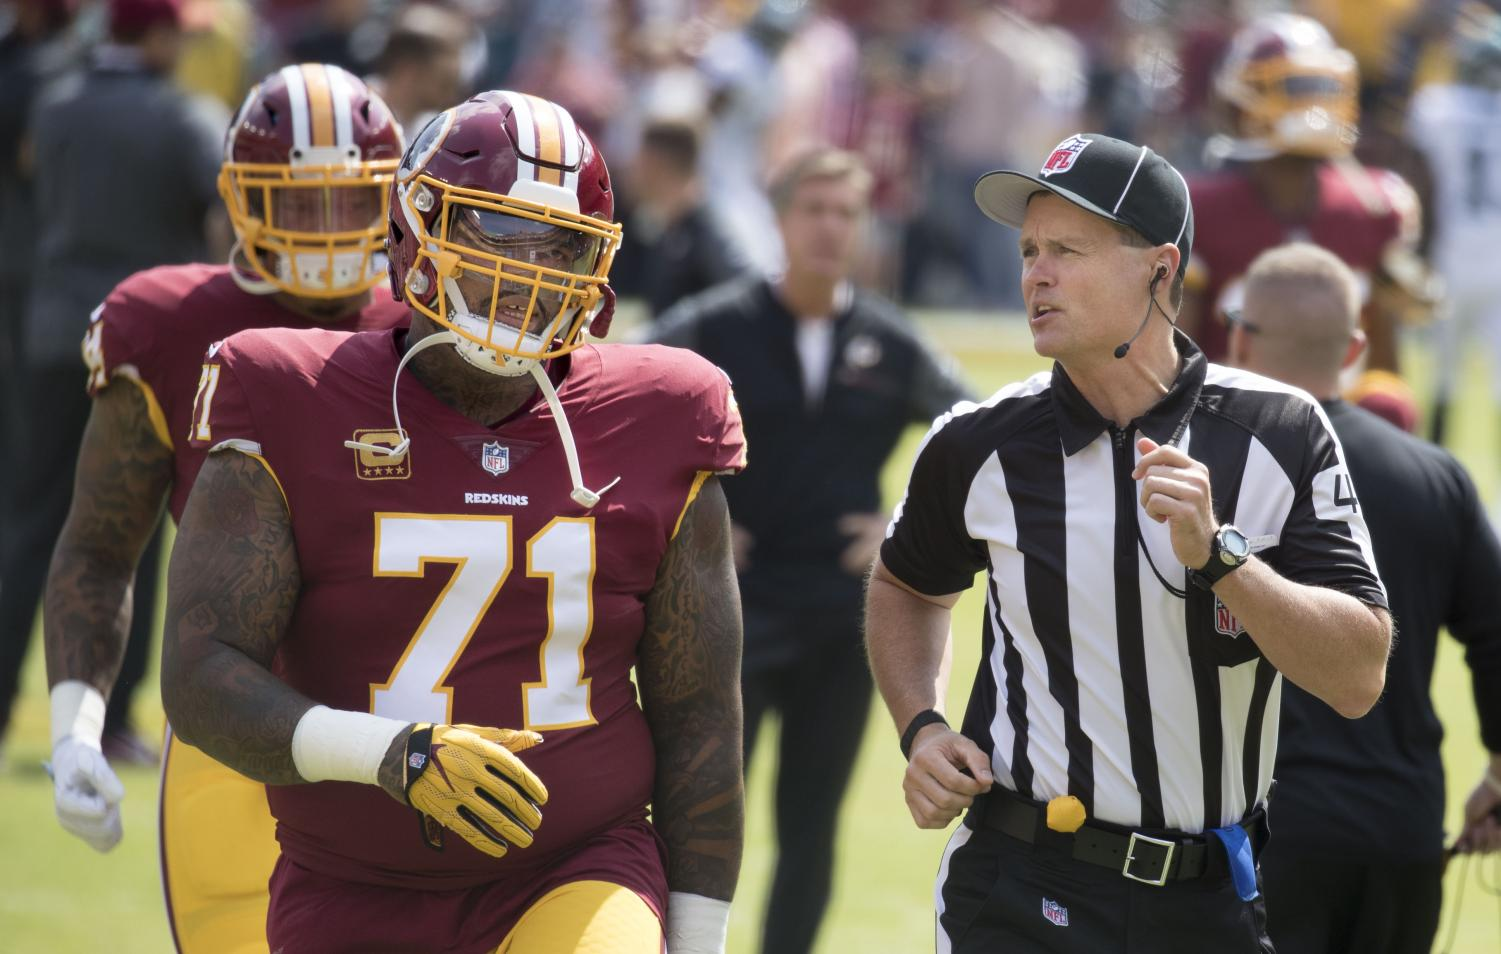 Longtime Redskins captain and fan favorite Trent Williams speaks to an official during a game. After a medical misdiagnosis, Williams has not played this season for the Redskins and has vowed to never return.